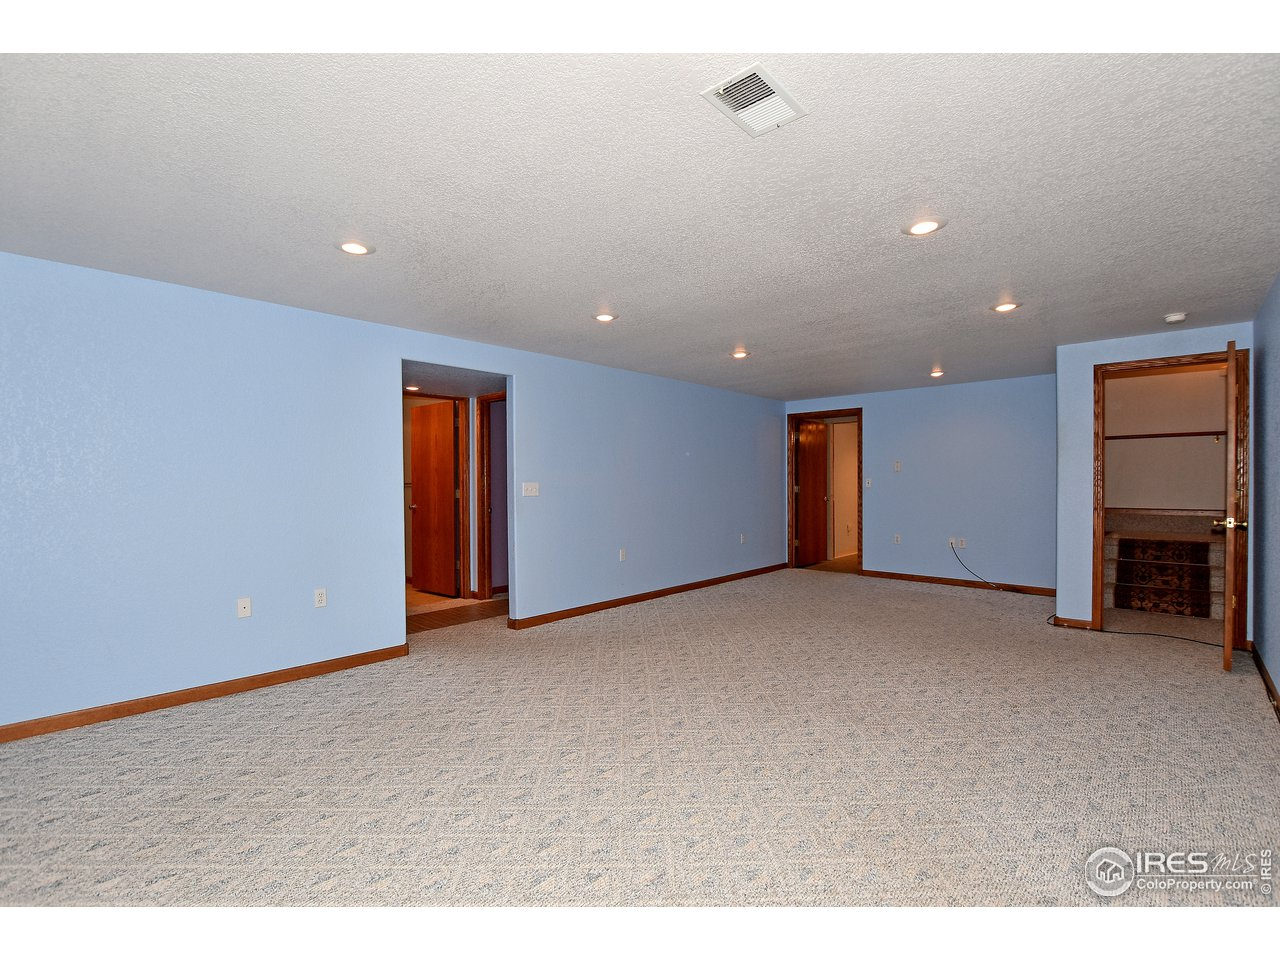 Family or Rec room in basement